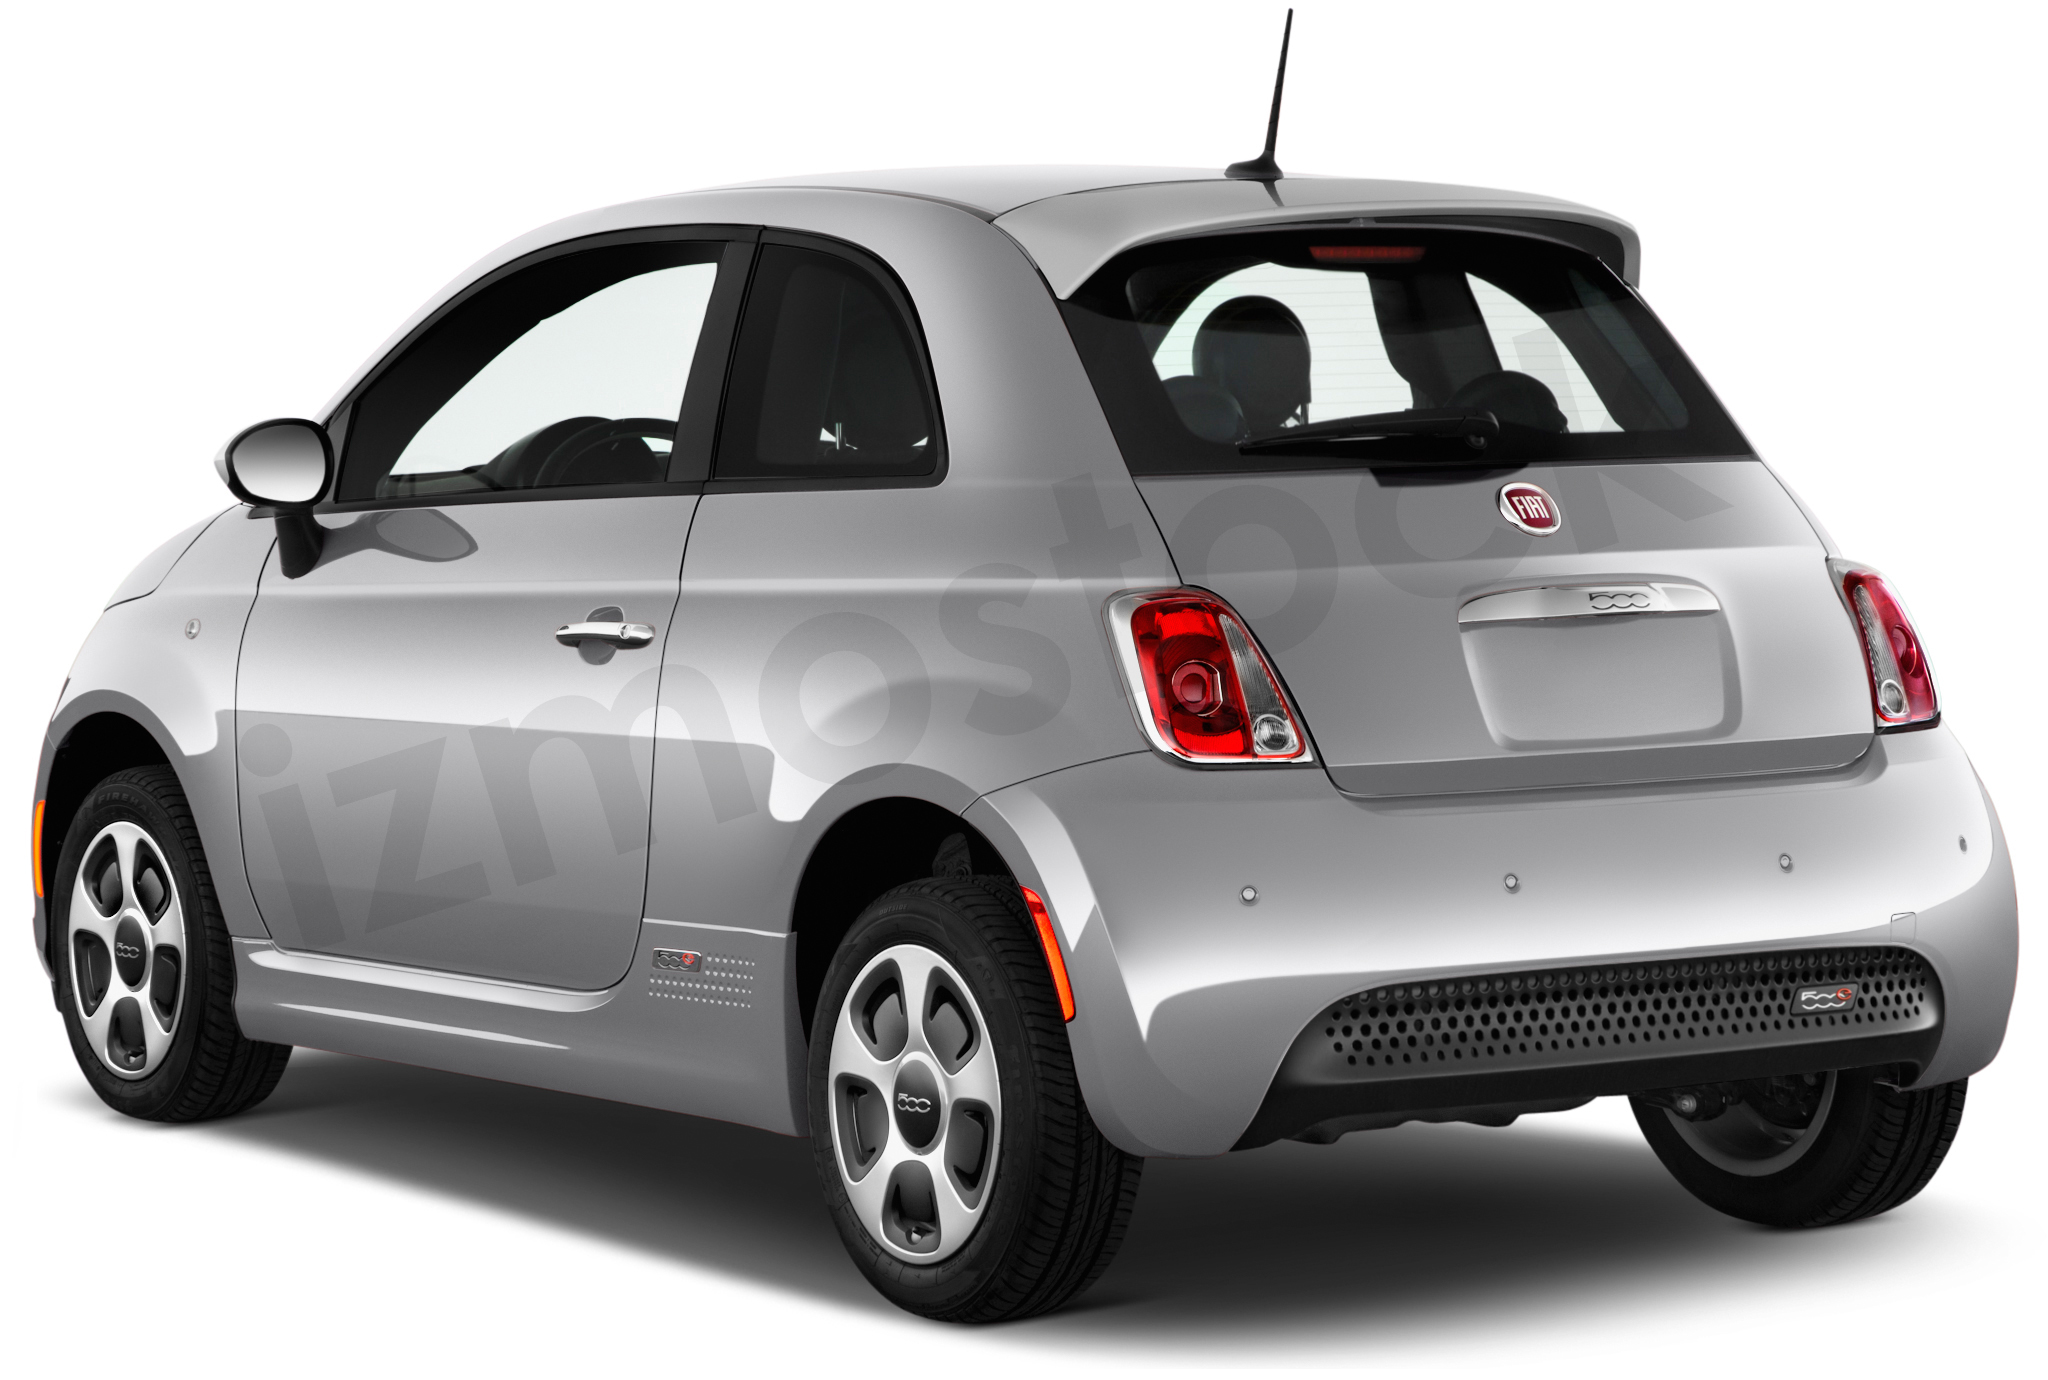 2017 Fiat 500e Review Specs Configuration And Pictures on hood fiat 500e